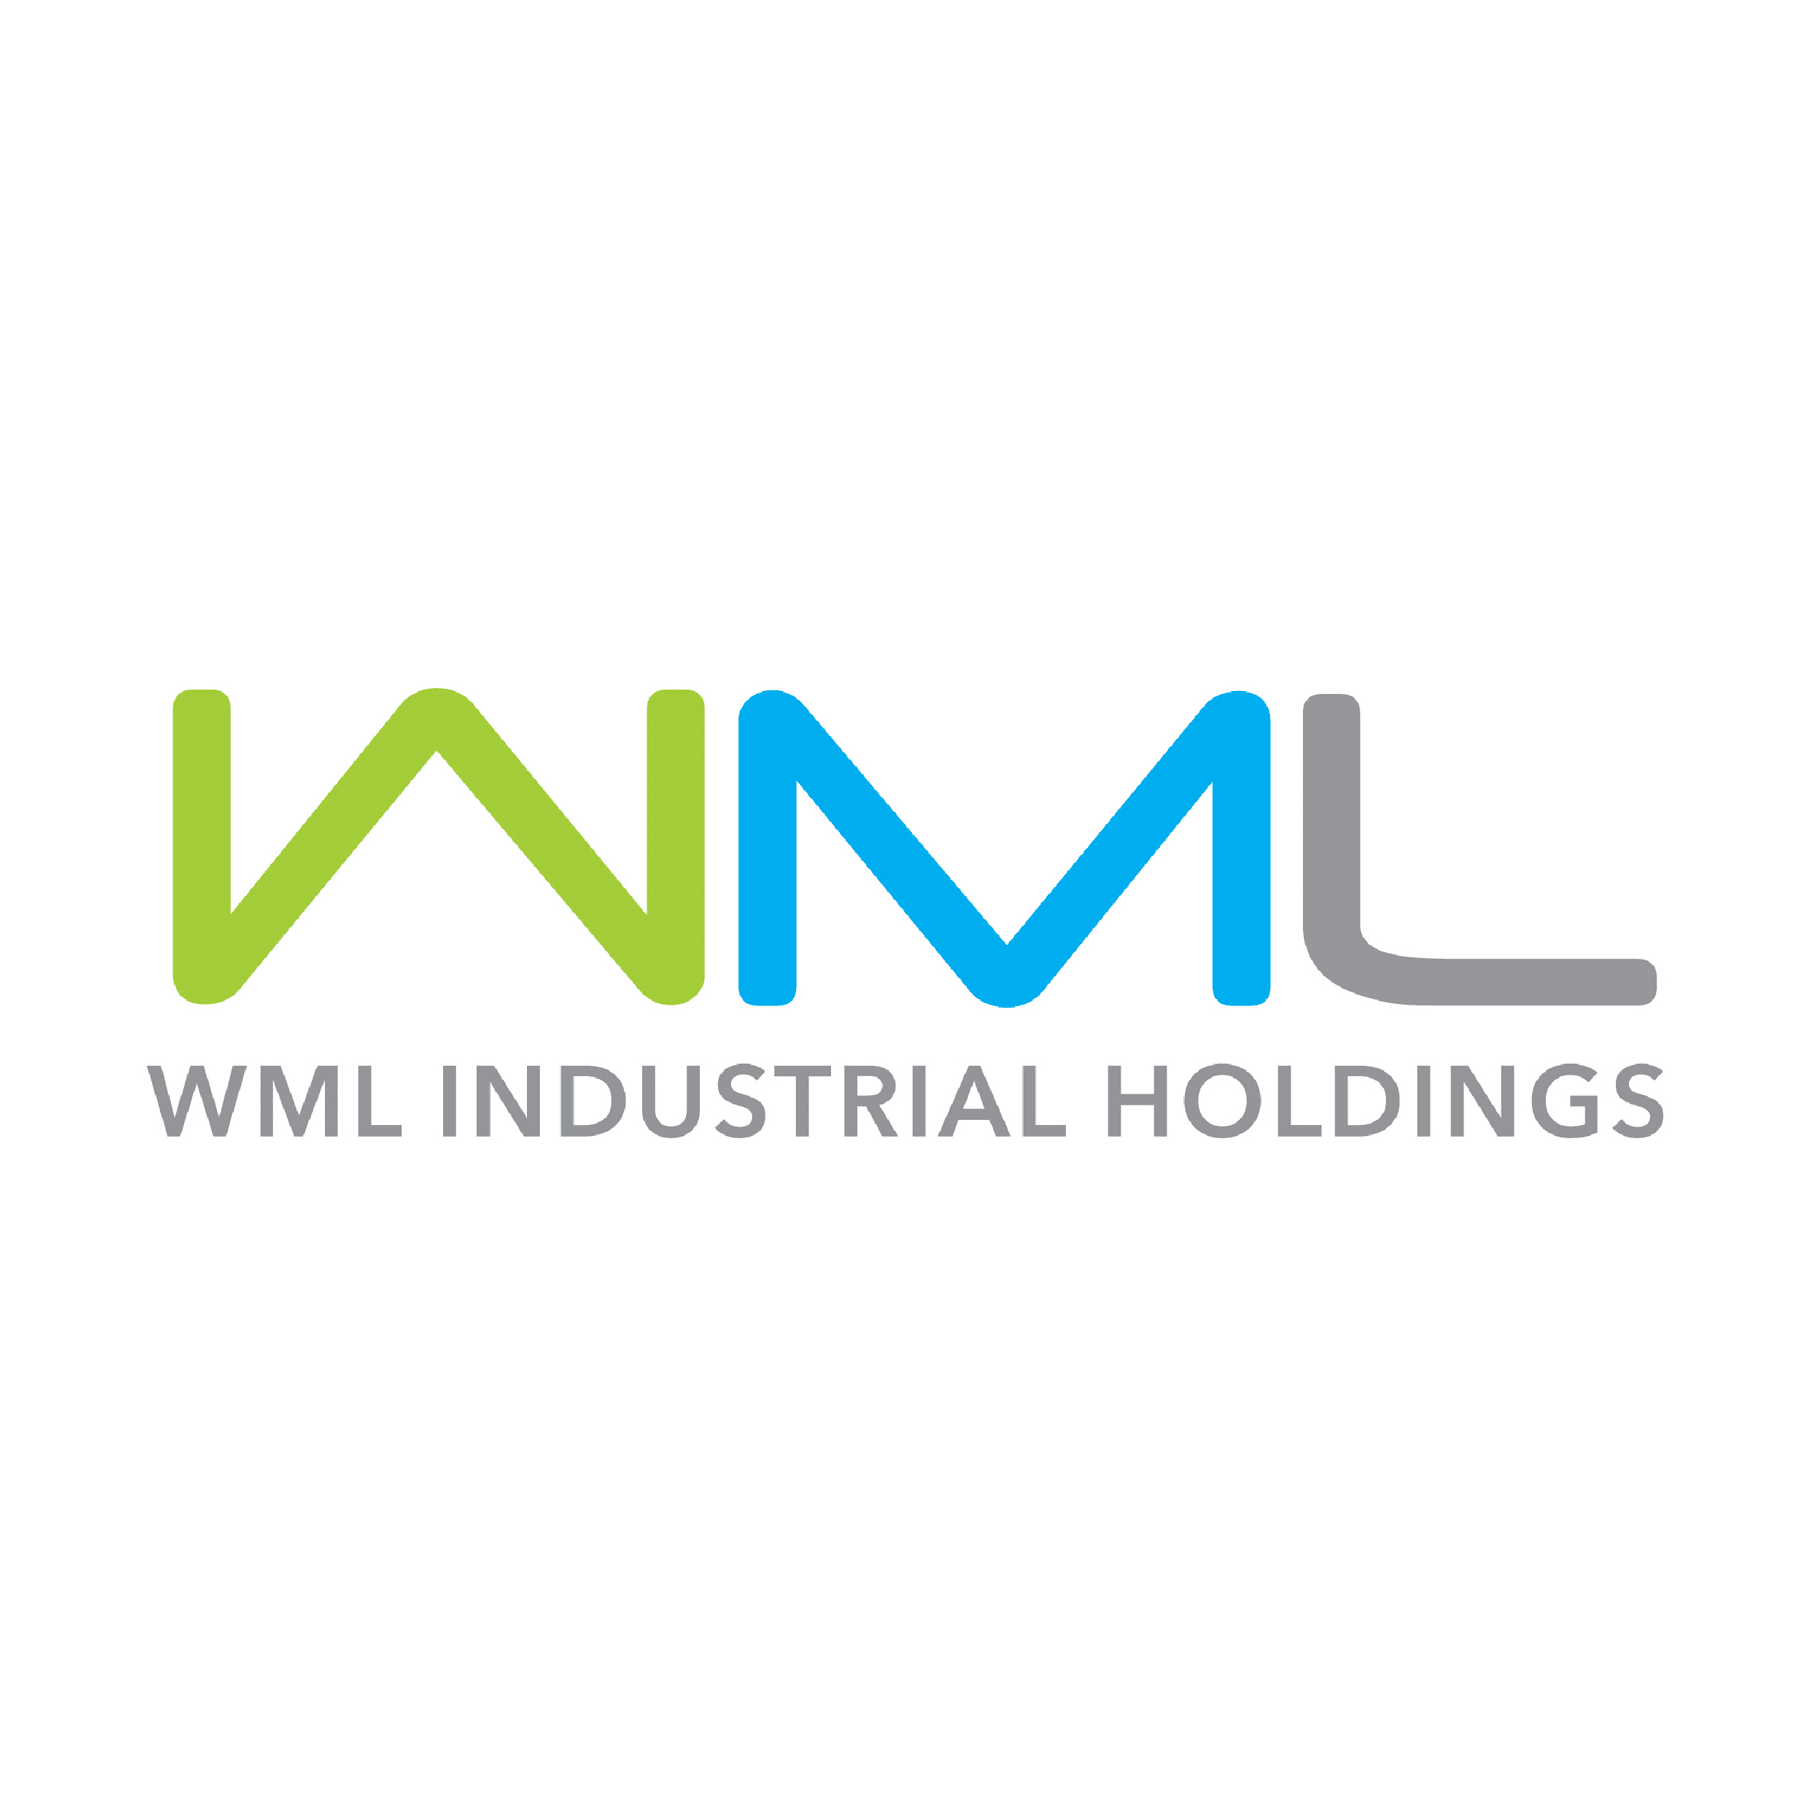 WML Industrial Holdings